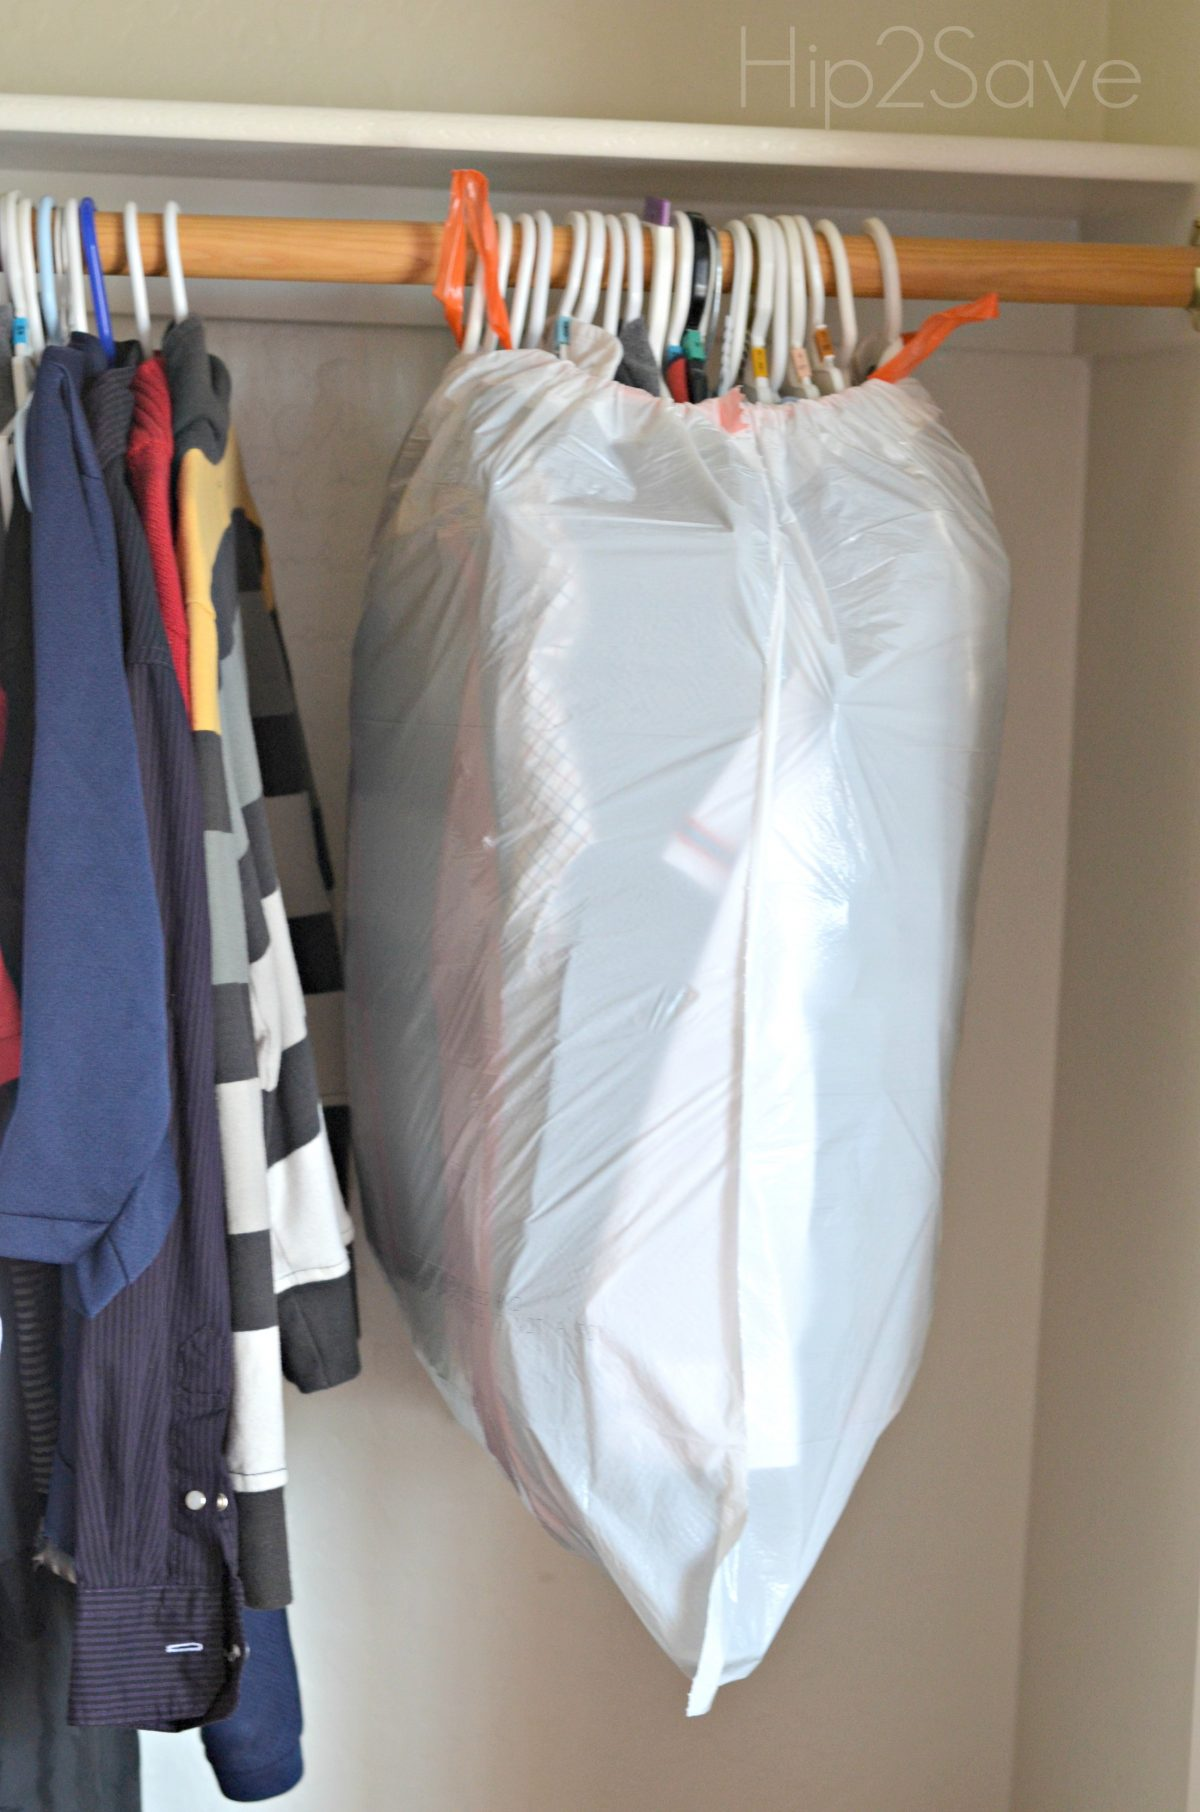 Use a garbage bag for hanging clothes Hip2Save